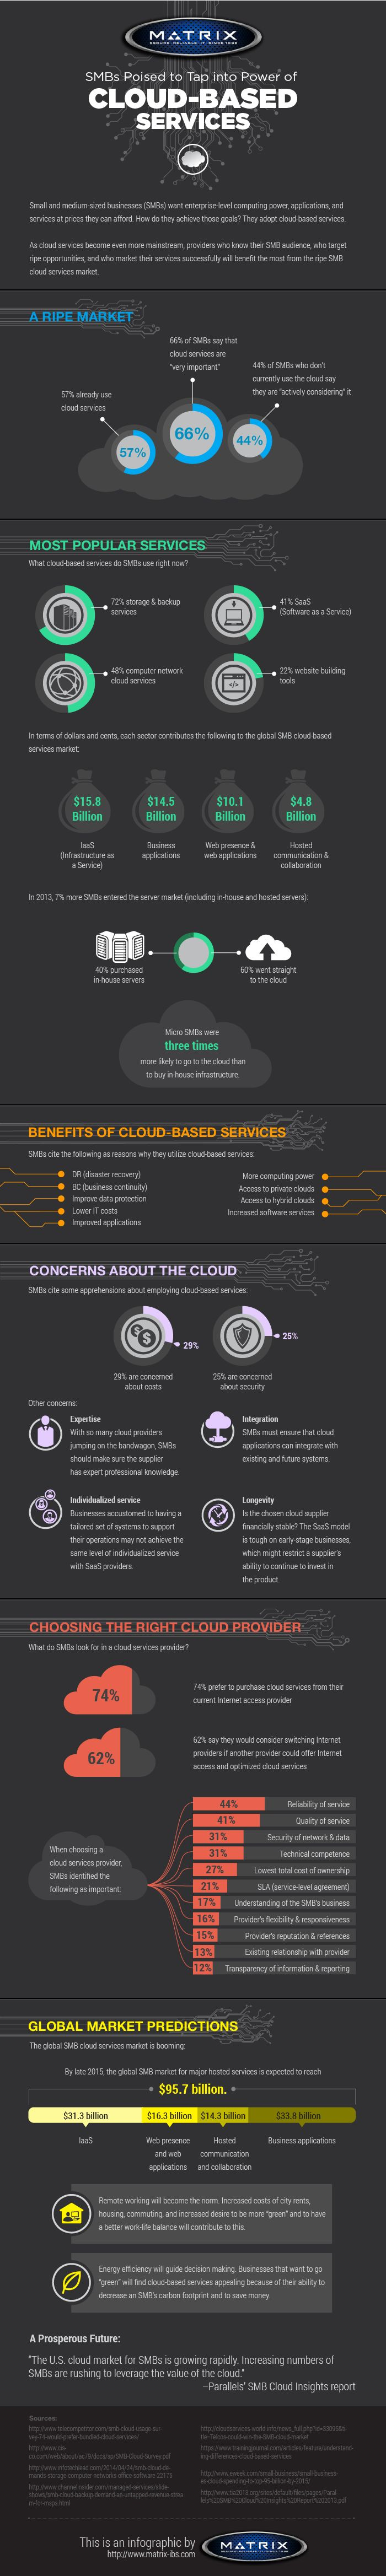 SMBs Poised to Tap into Power of Cloud-Based Services [INFOGRAPHIC] #Cloud #Services #Infographic